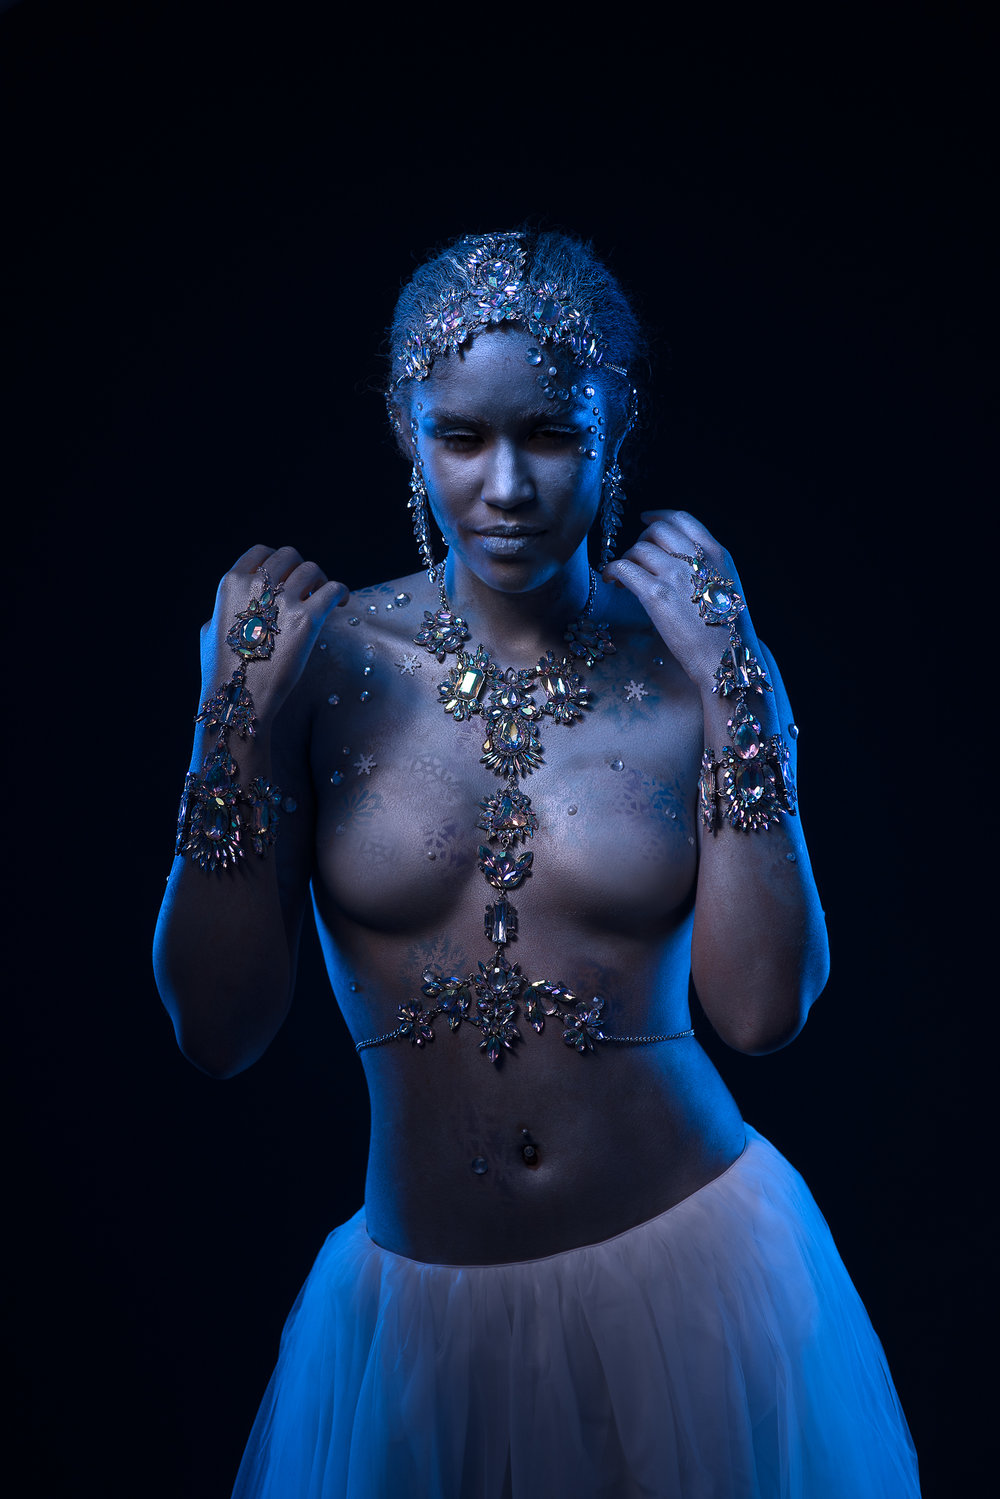 atlanta body paint photography ice queen-1.jpg